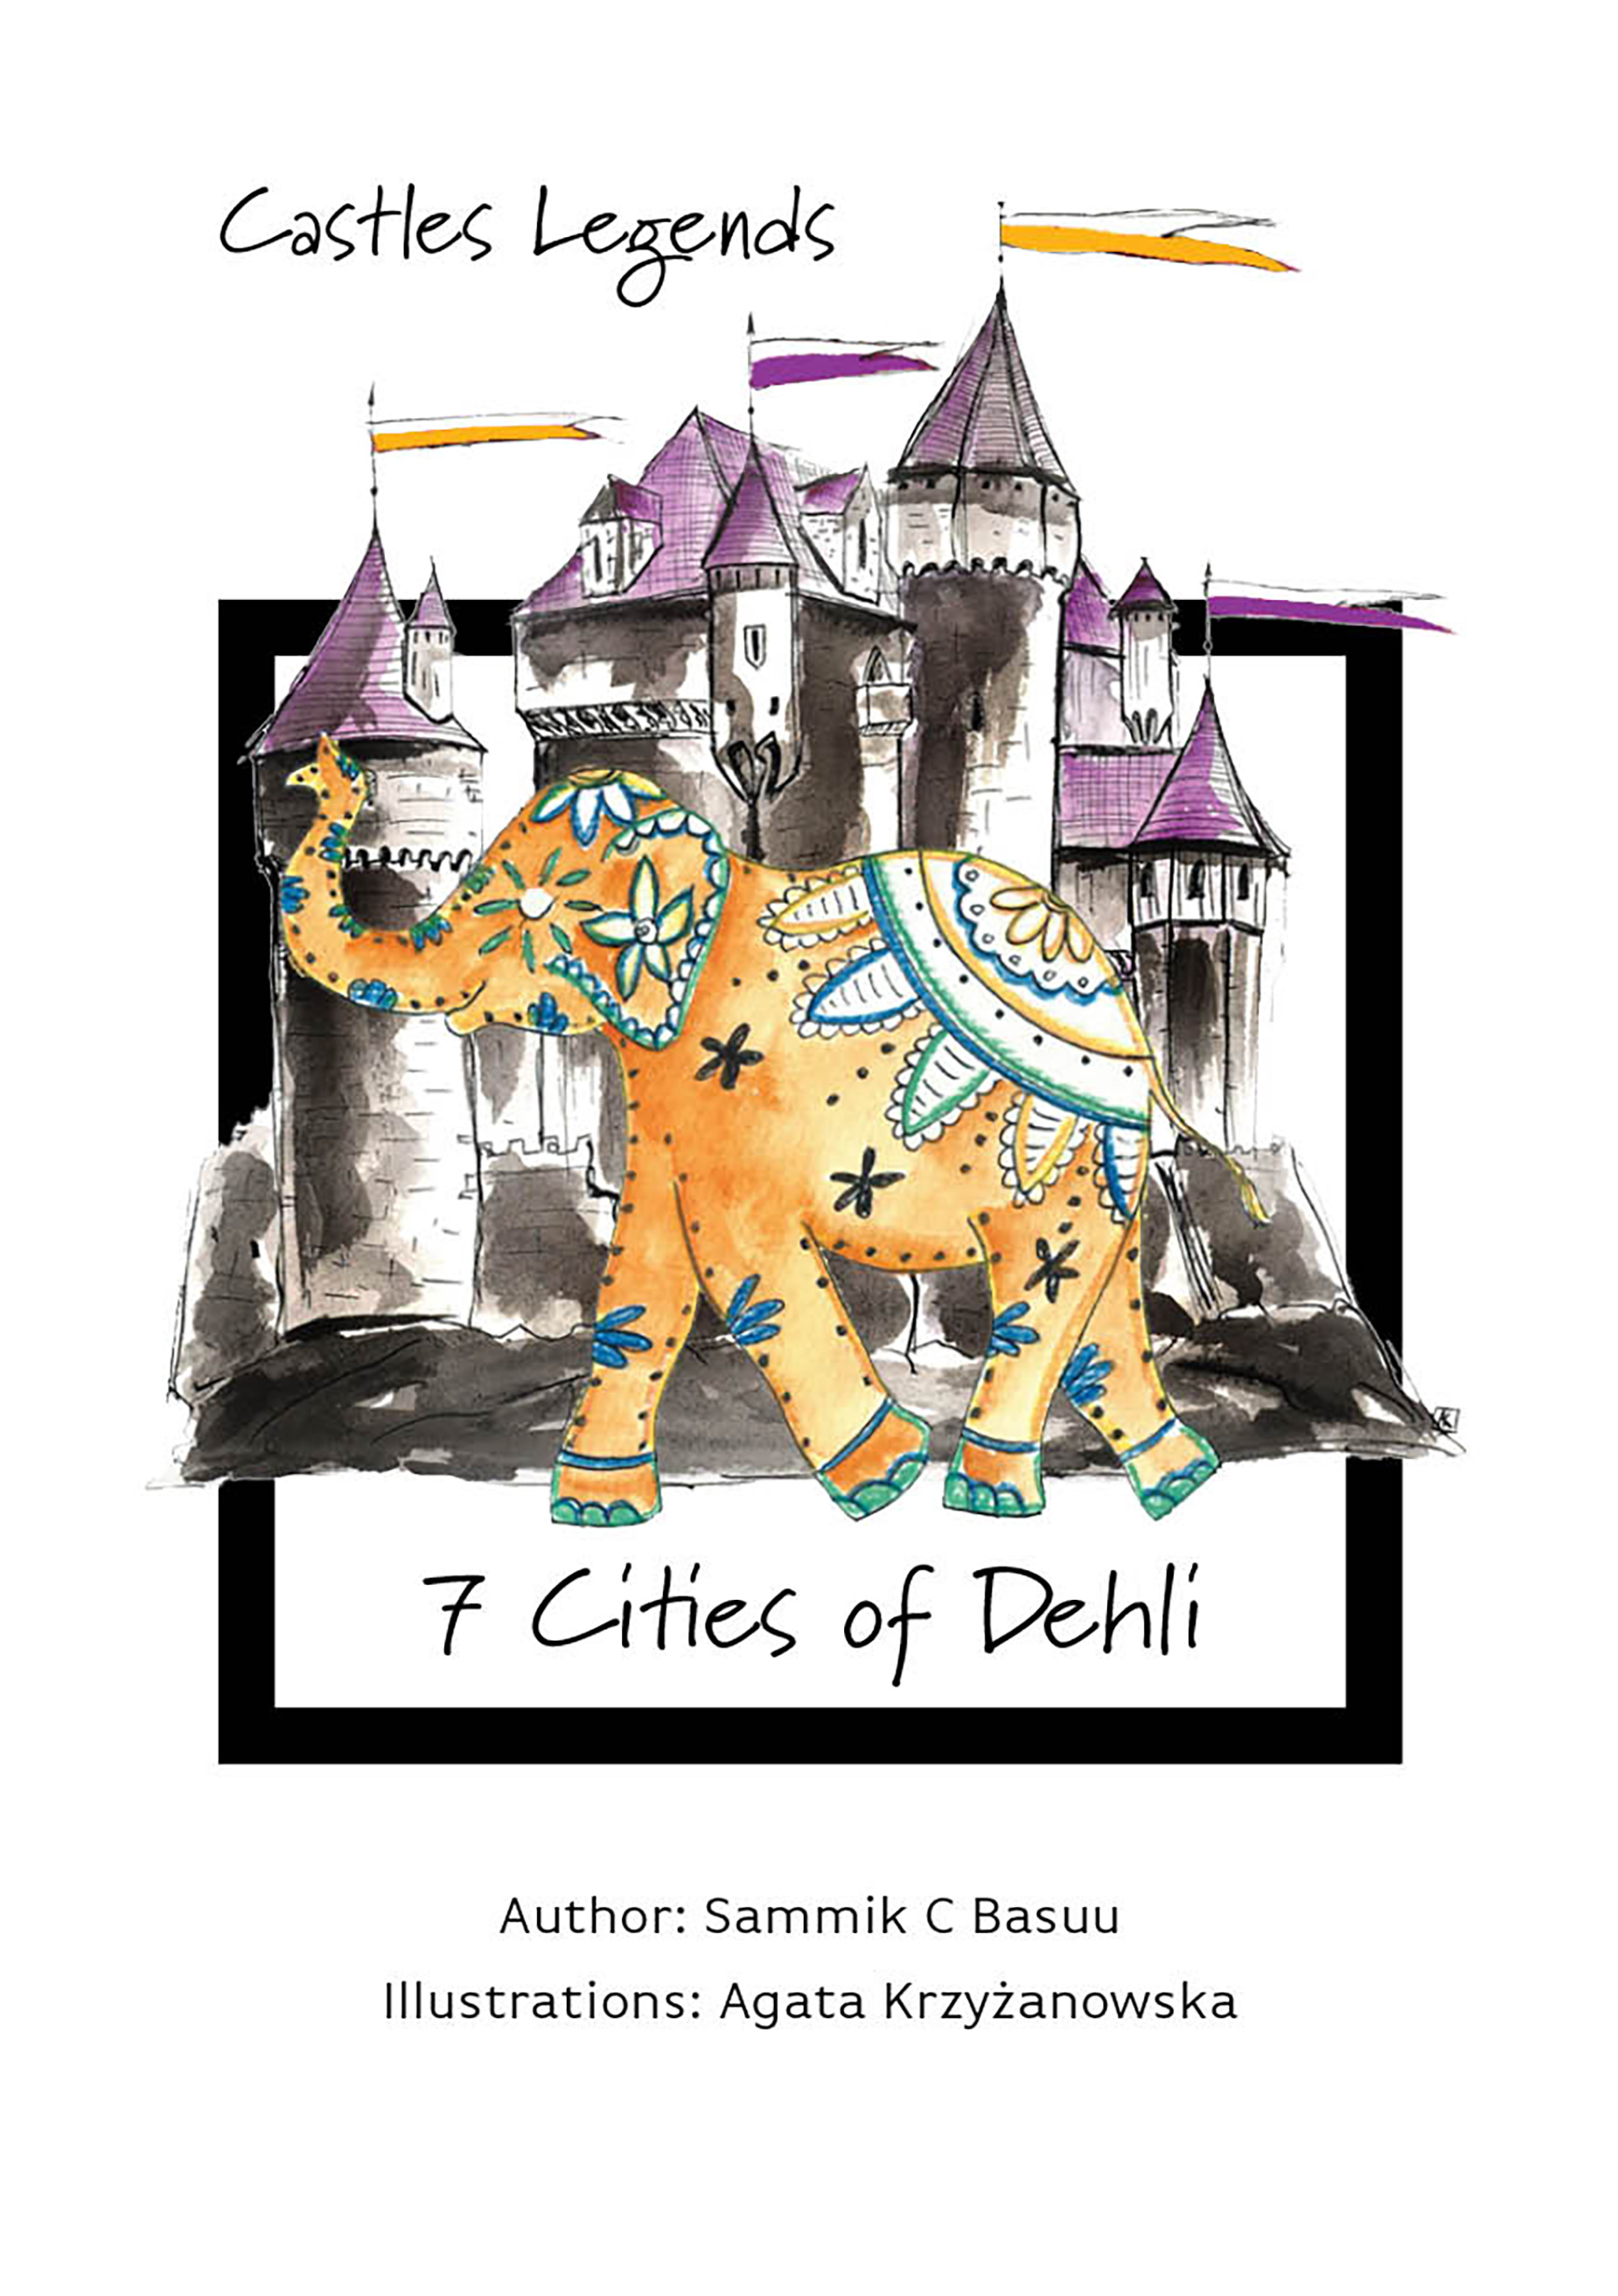 Castles Legends: 7 Cities of Dehli